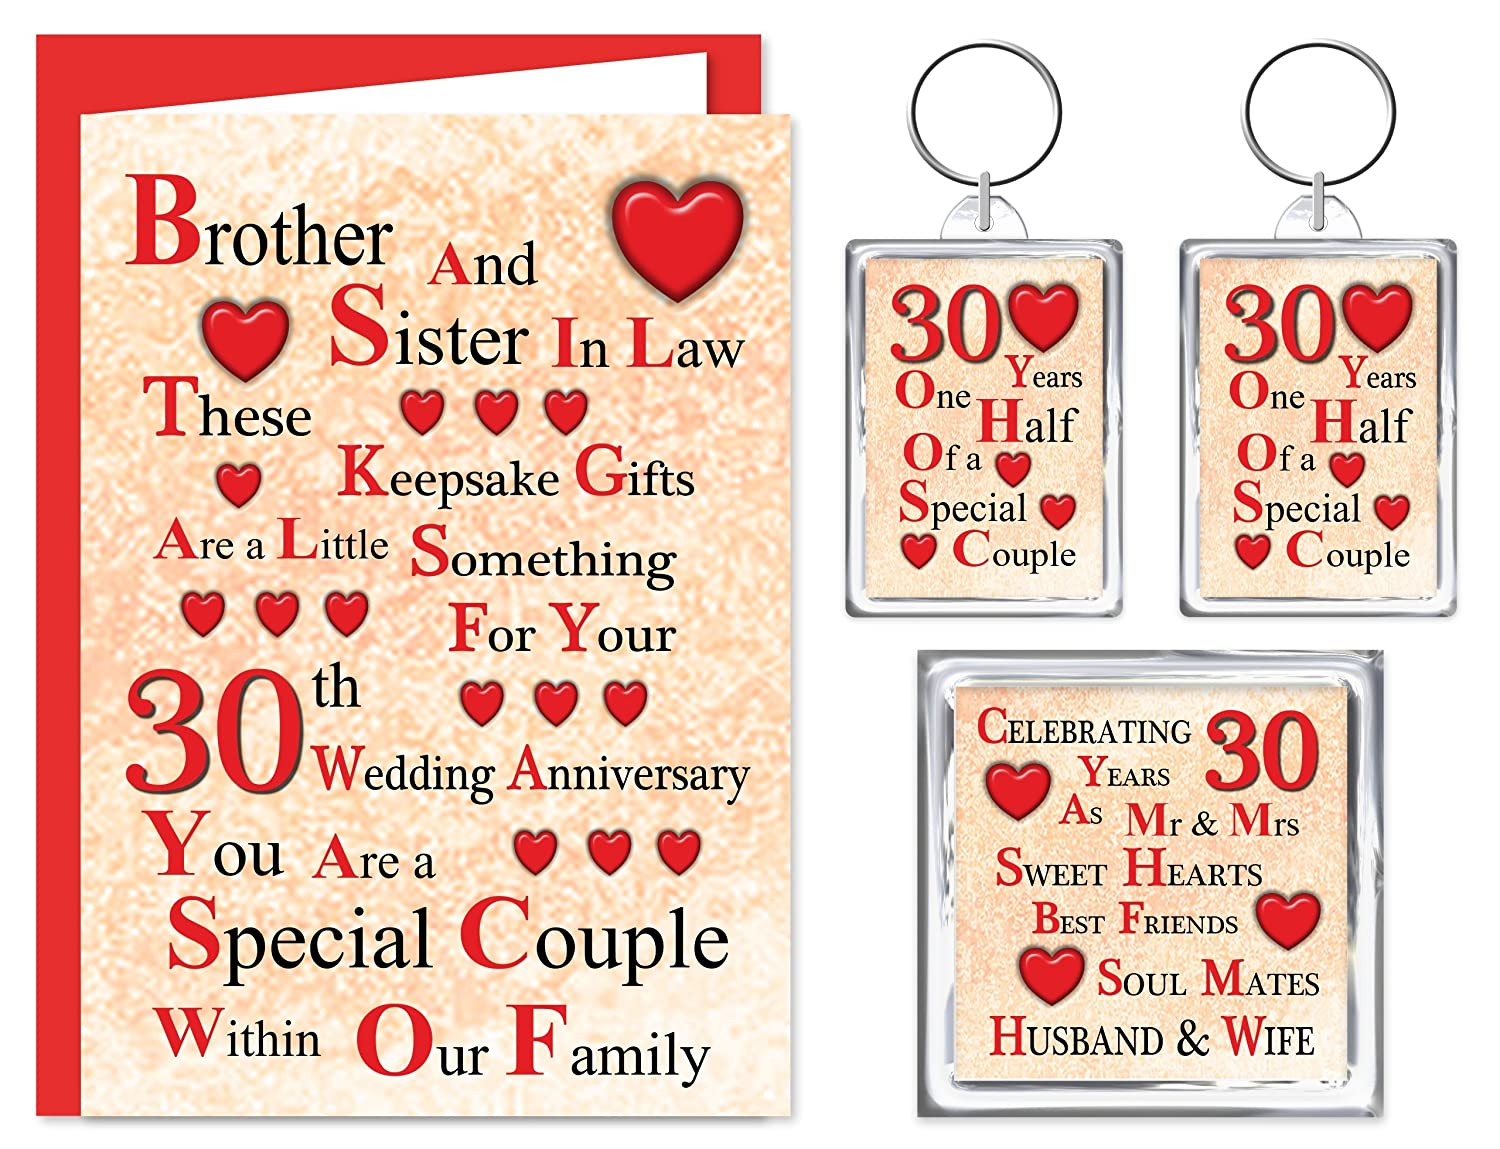 Wedding Gifts For Sister In Law: Gift For Sister And Brother In Law @DP75